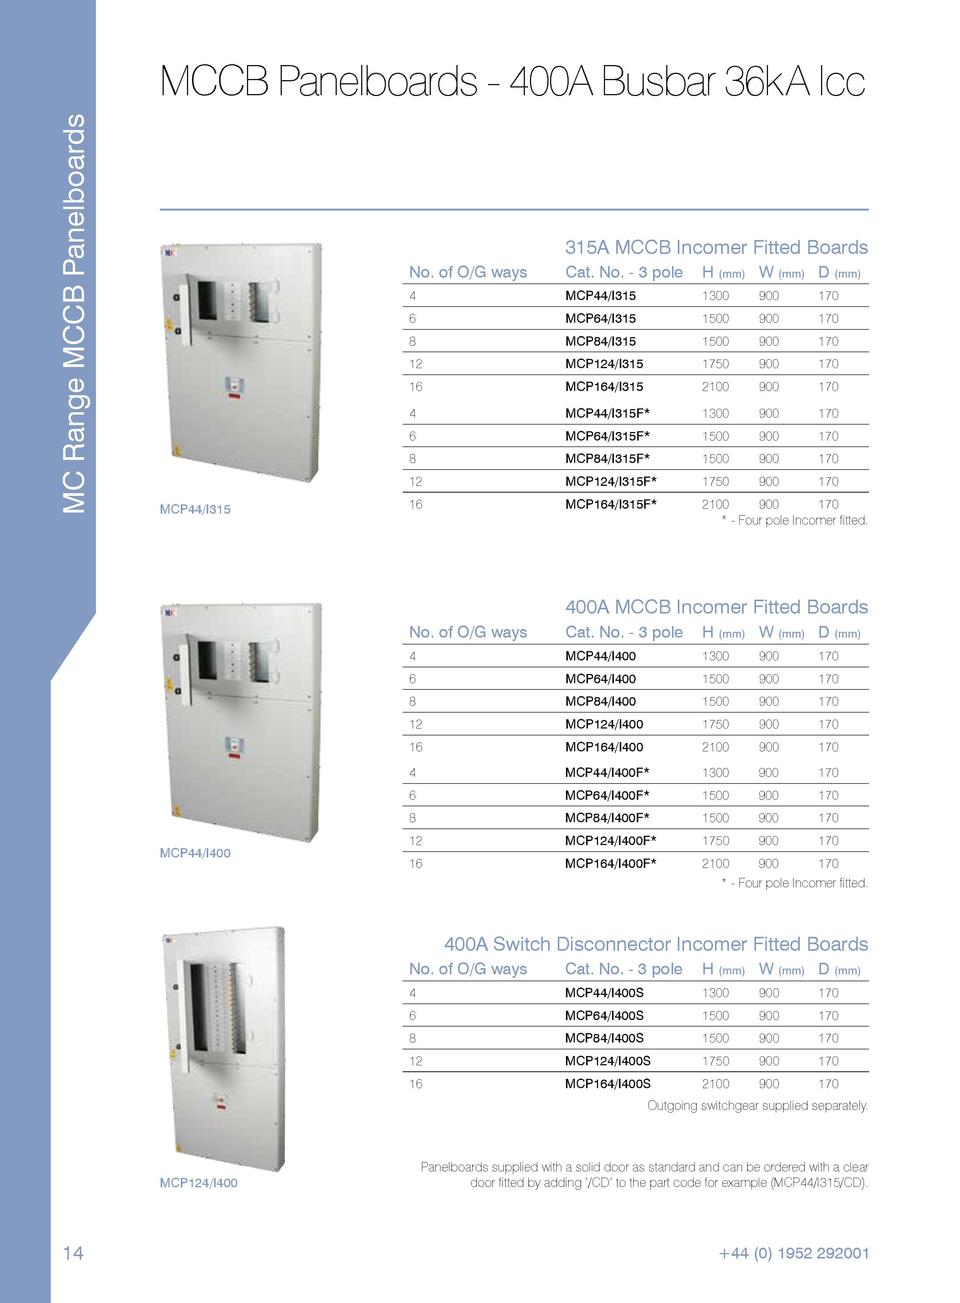 MC Range MCCB Panelboards  MCCB Panelboards - 400A Busbar 36kA Icc  315A MCCB Incomer Fitted Boards No. of O G ways  H  mm...